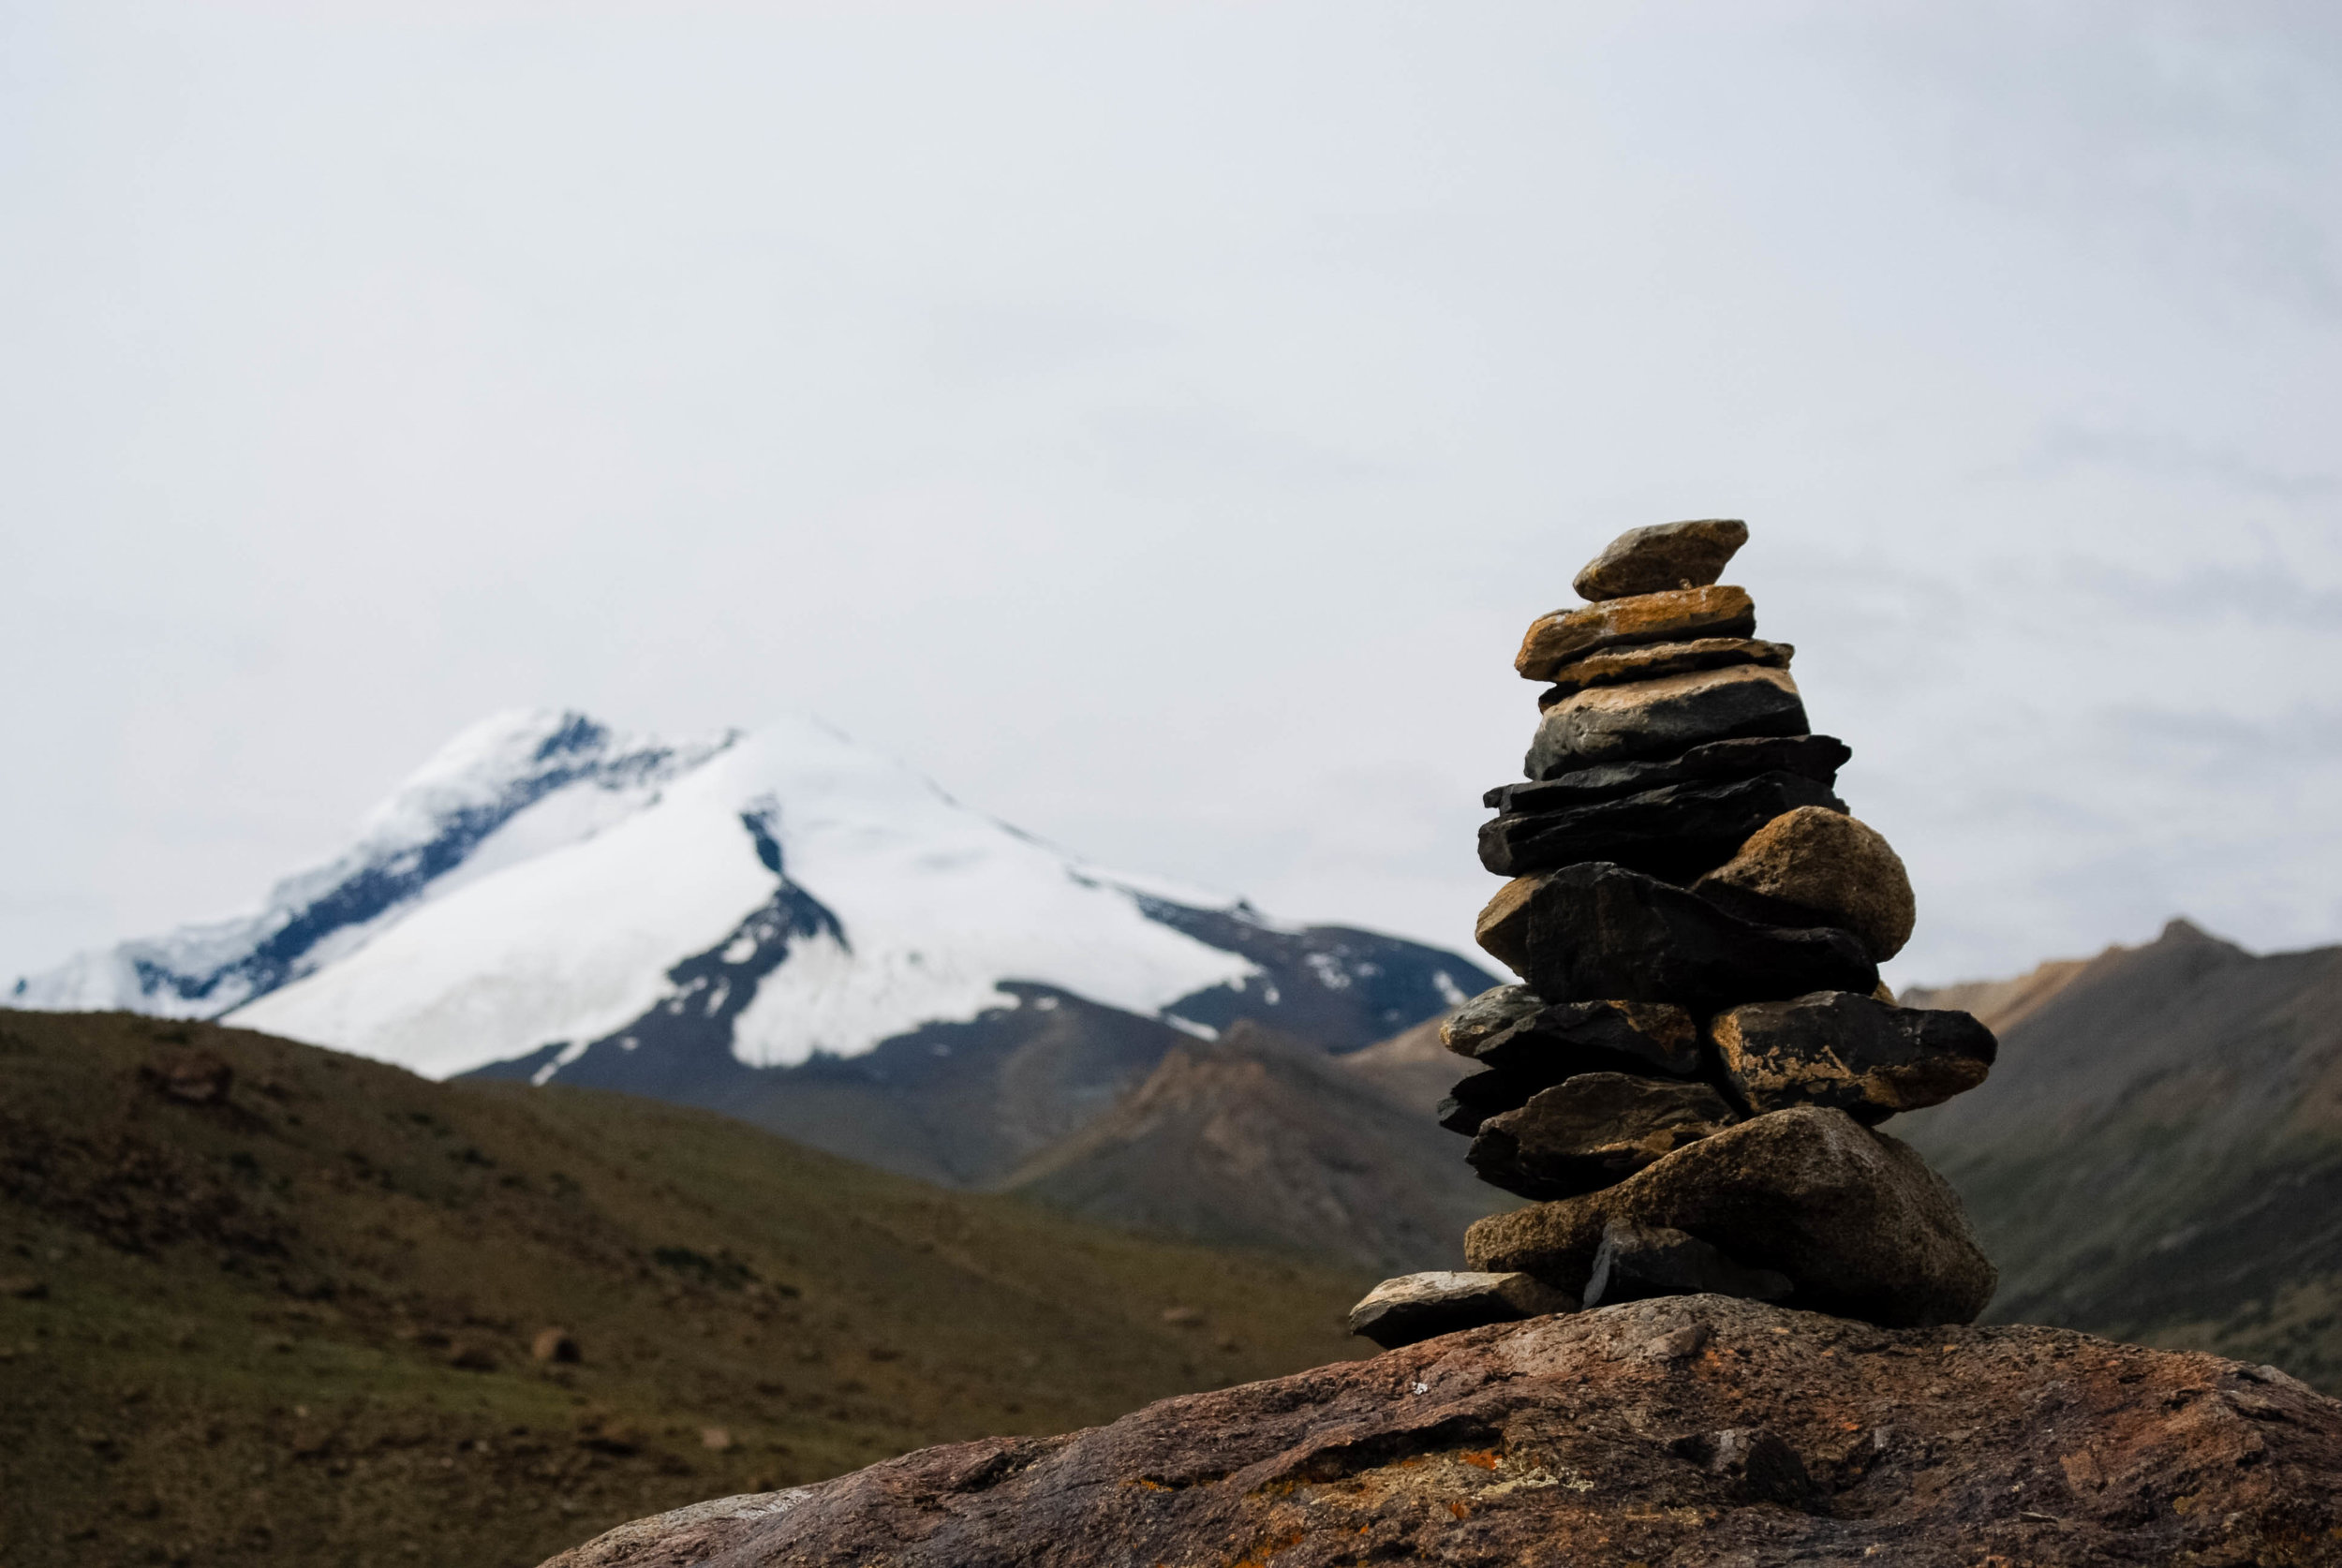 A stone cairn with the Kang Yaze peak behind it.